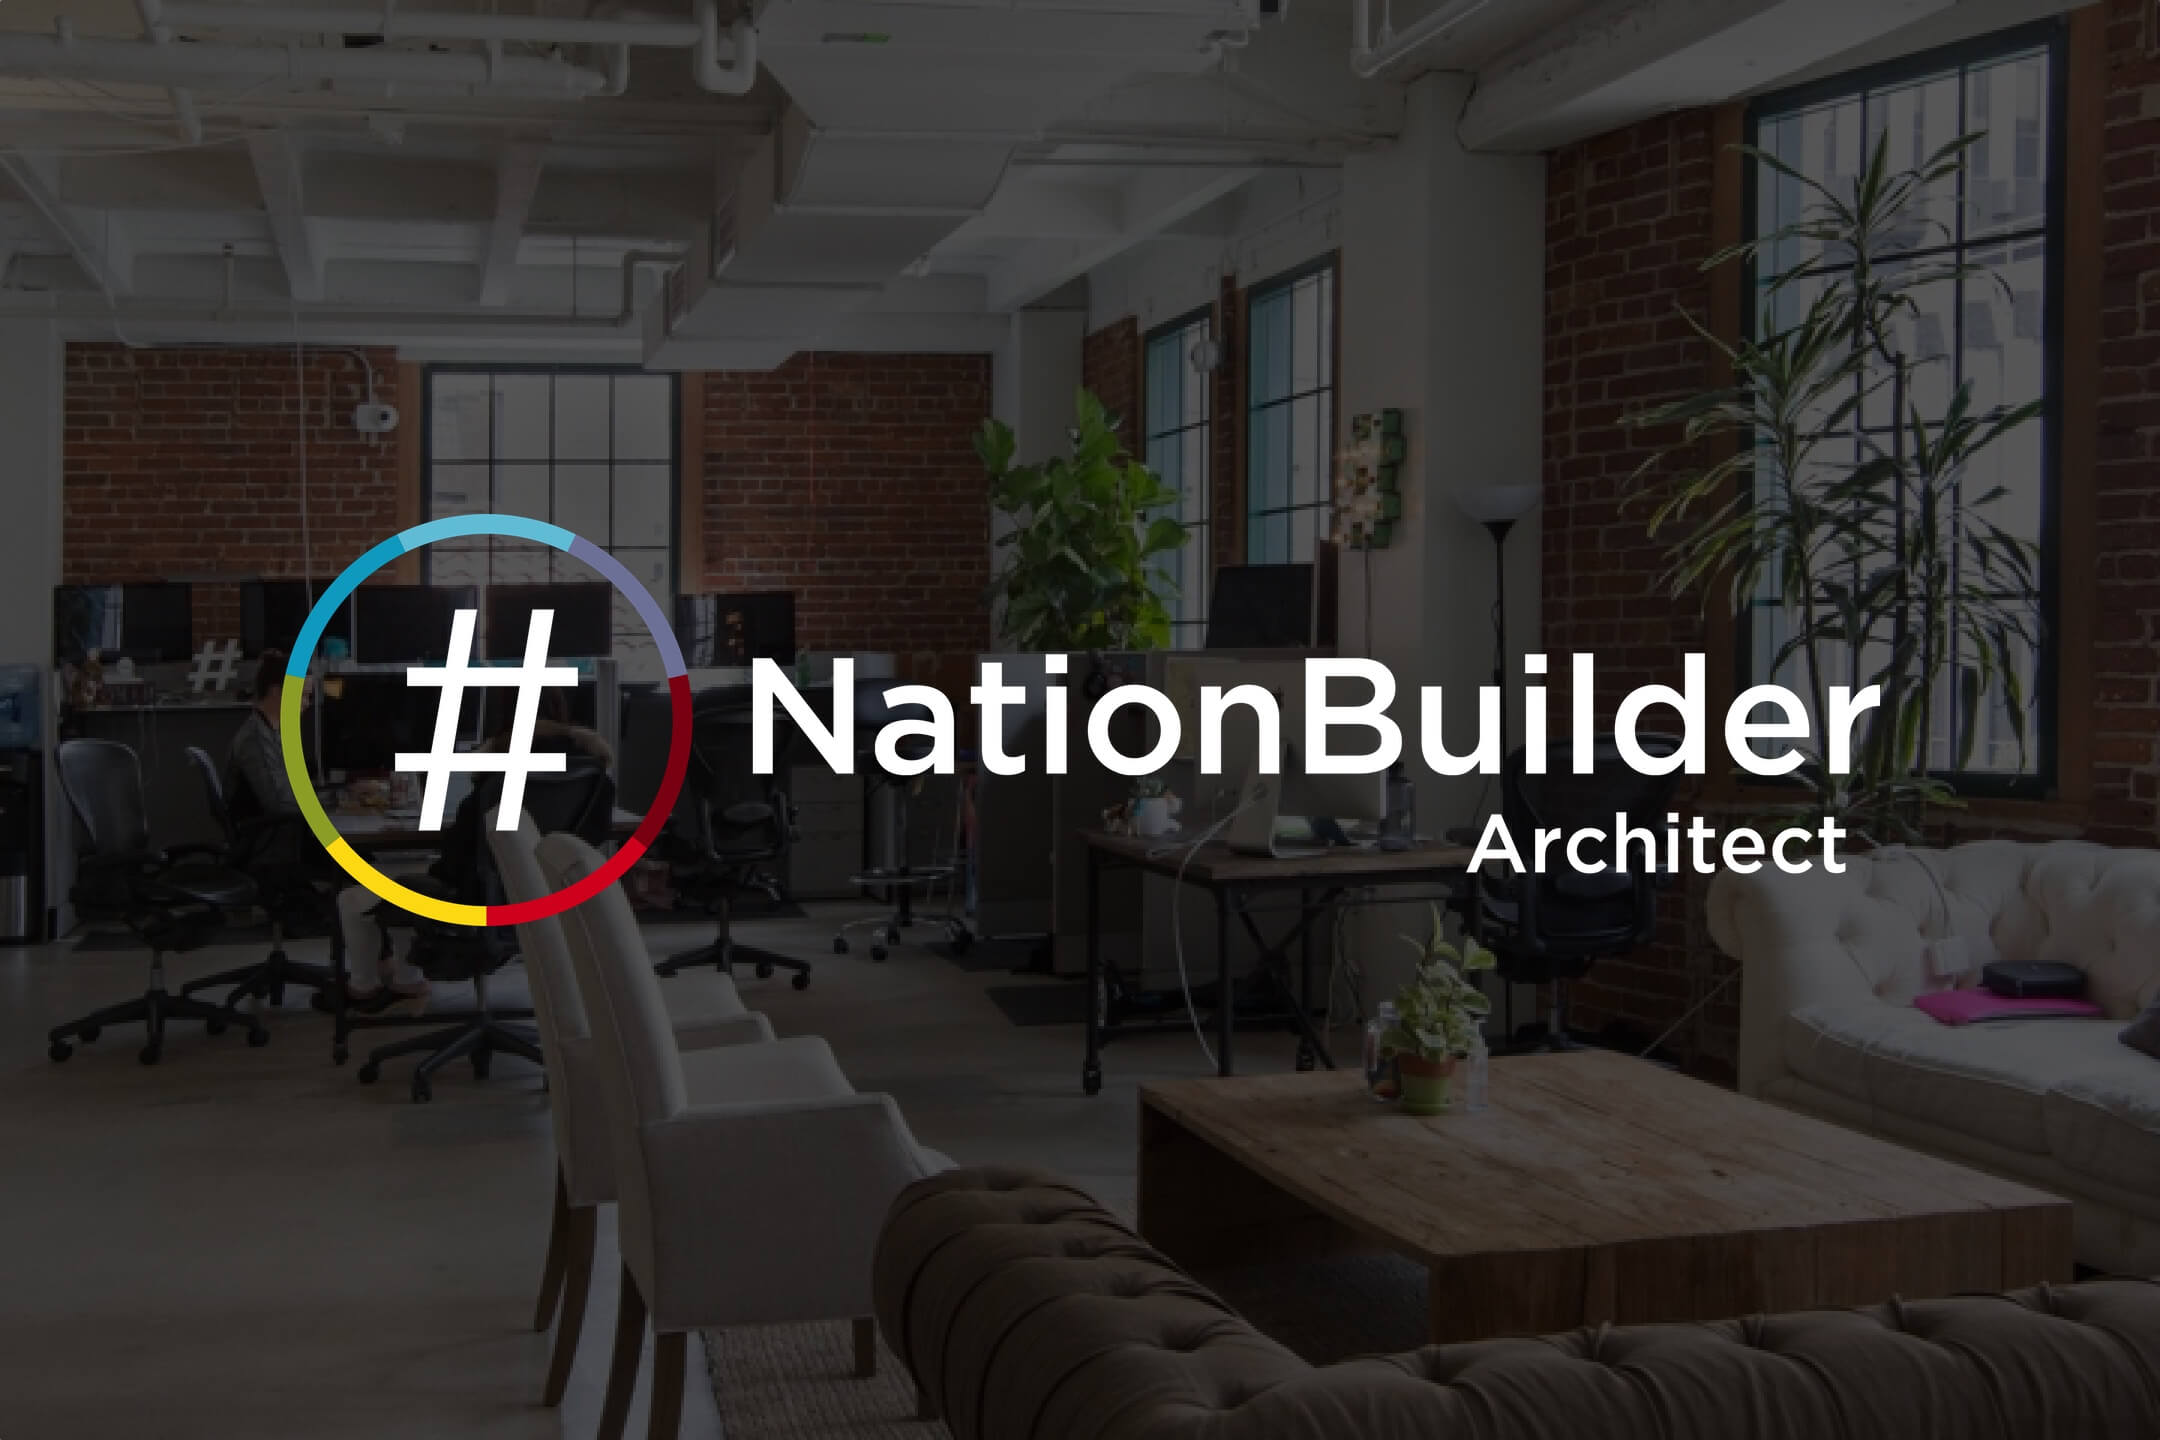 Ian Patrick Hines - Certified NationBuilder Architect